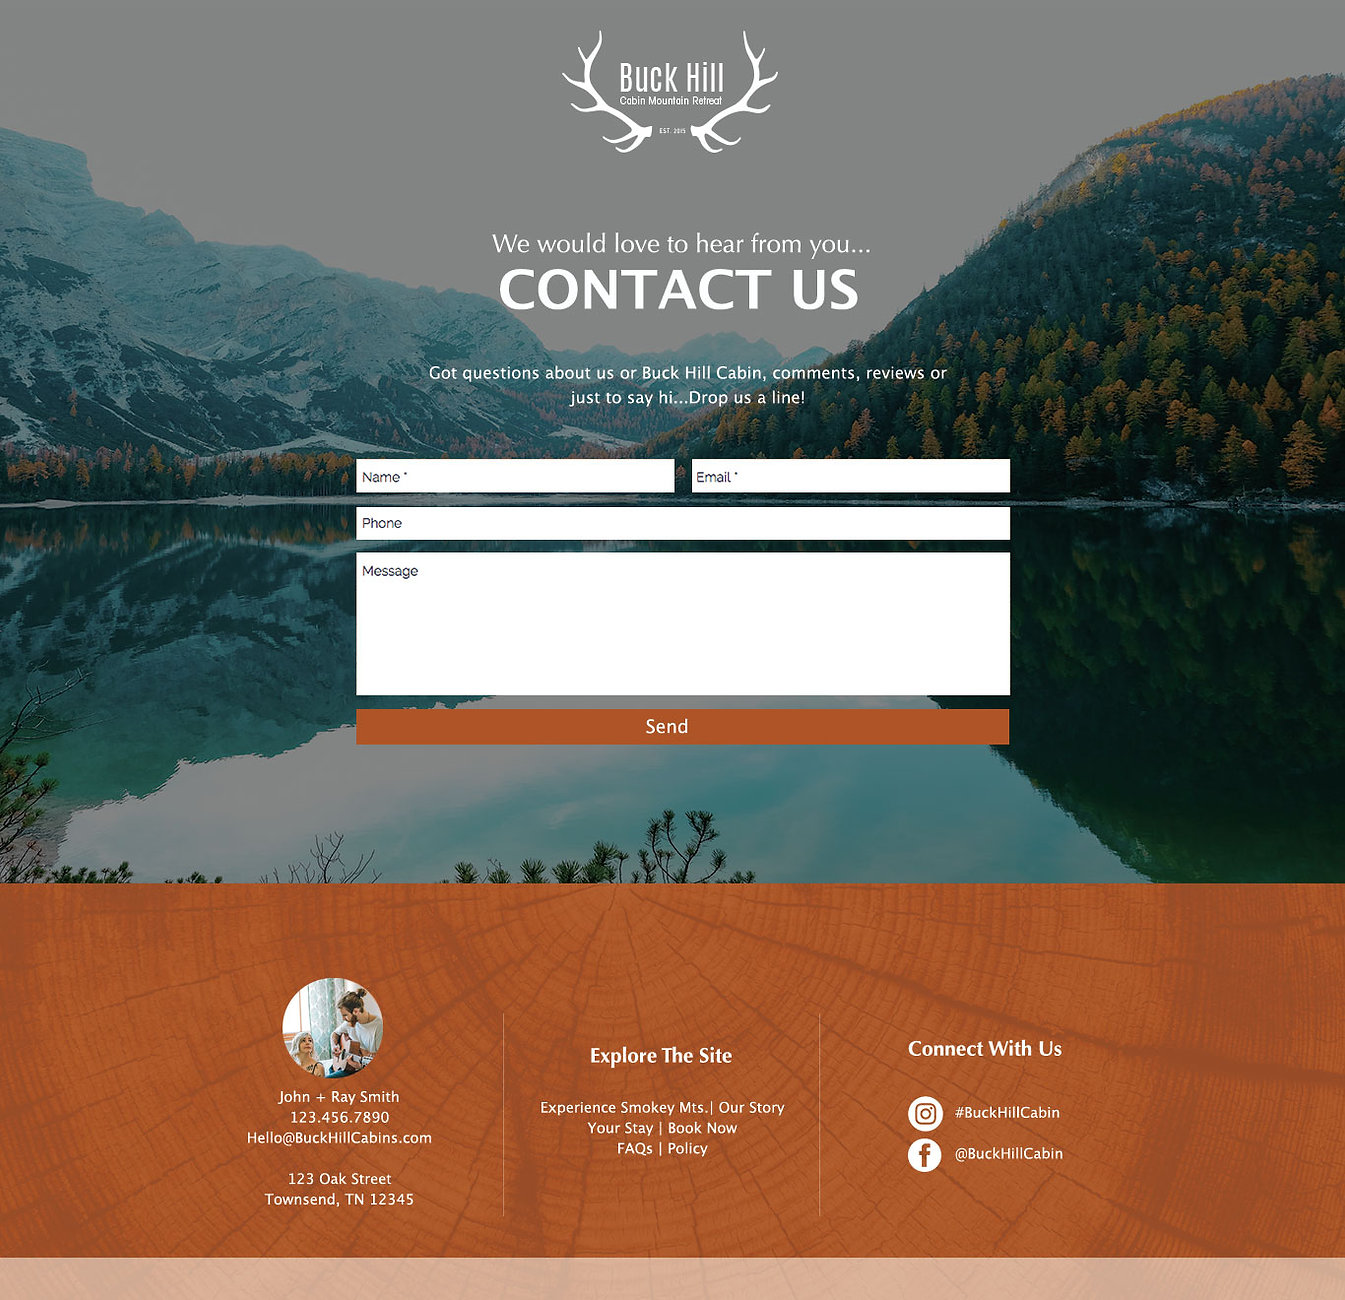 5-Contact-Us-The-Great-Outdoors-Website-